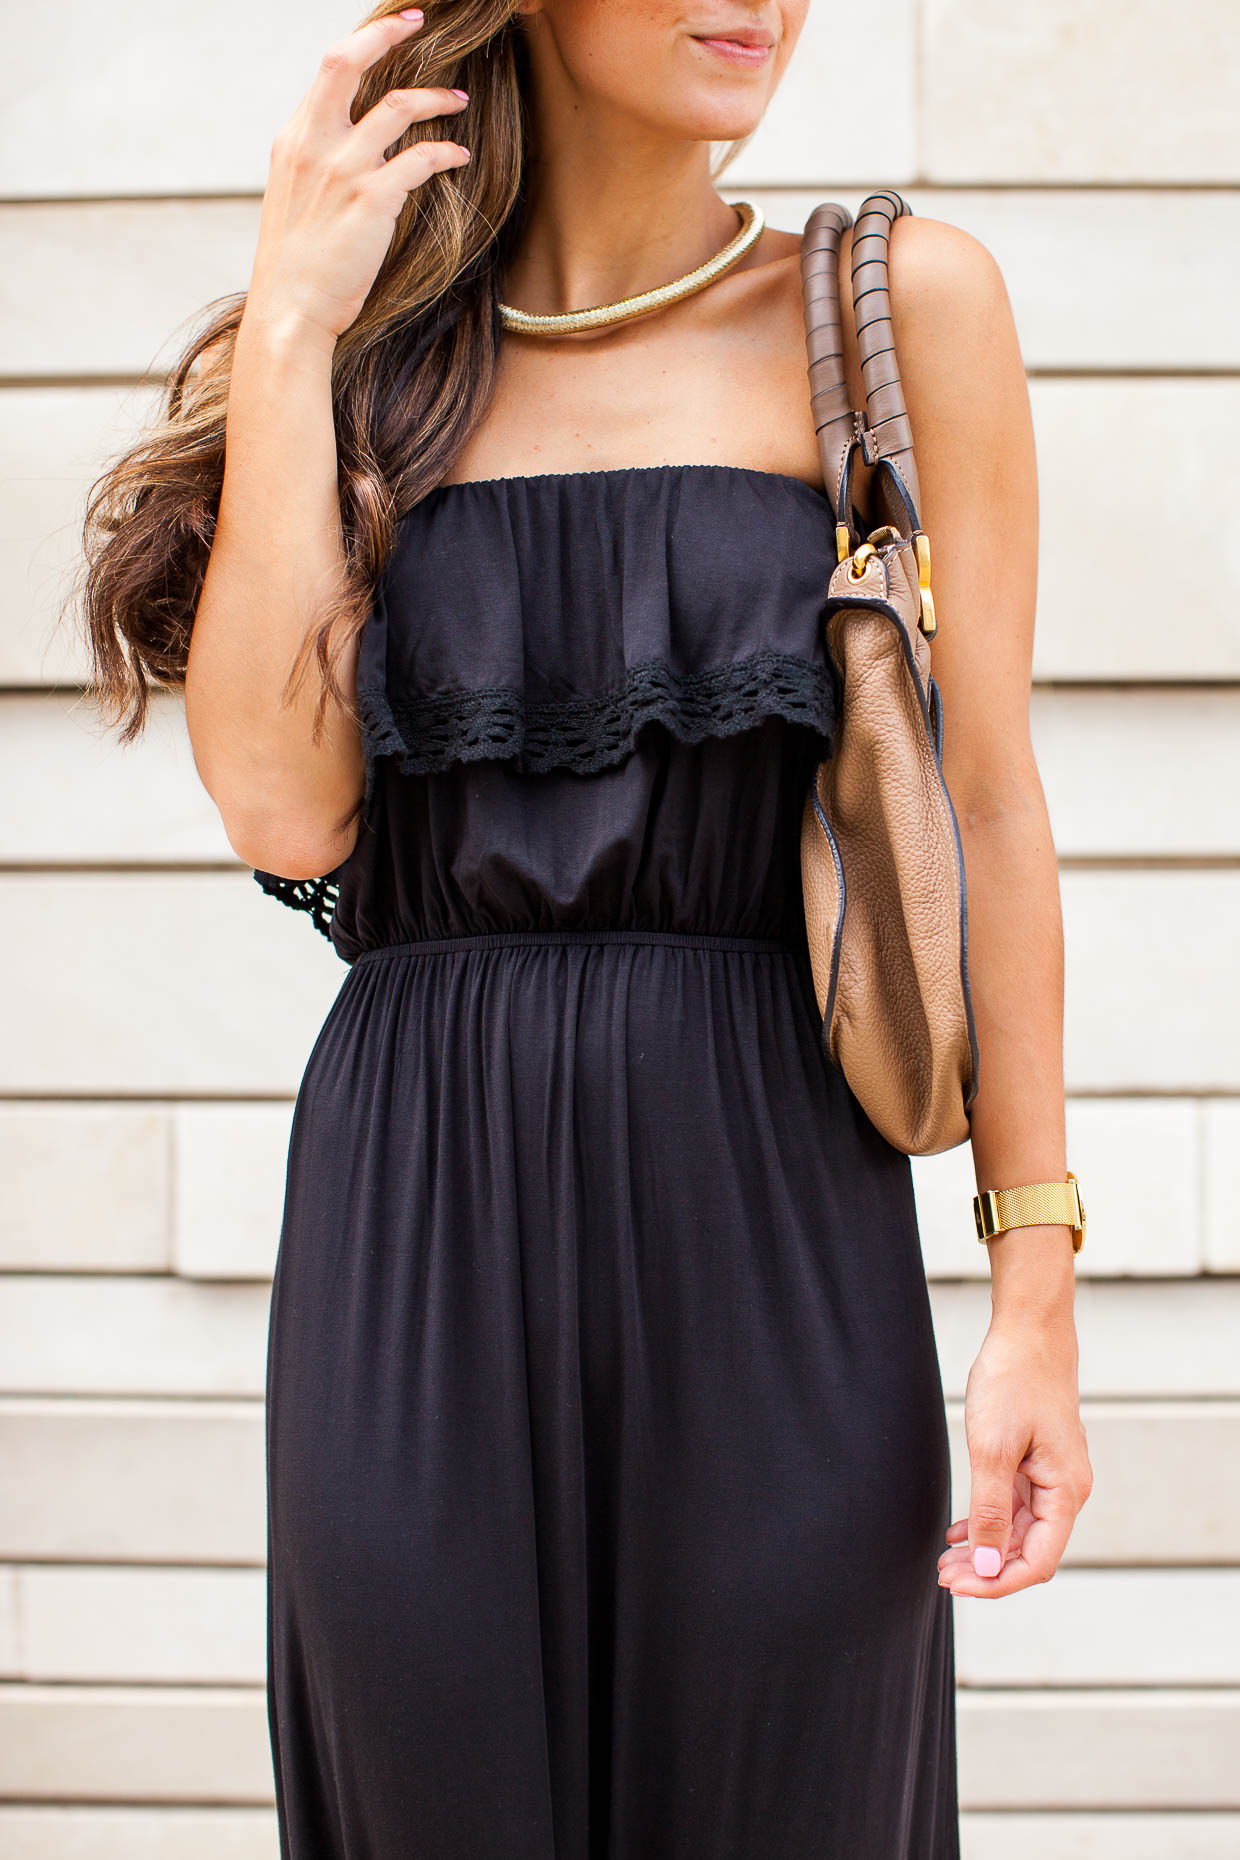 Fashion Blogger The Darling Detail is wearing a Ruffled Strapless Maxi Dress, with 'Krysta' Platform Sandals, Dior Sunglasses, a Larsson & Jennings Watch, and the Chloe 'Marcie – Small' Leather Satchel.